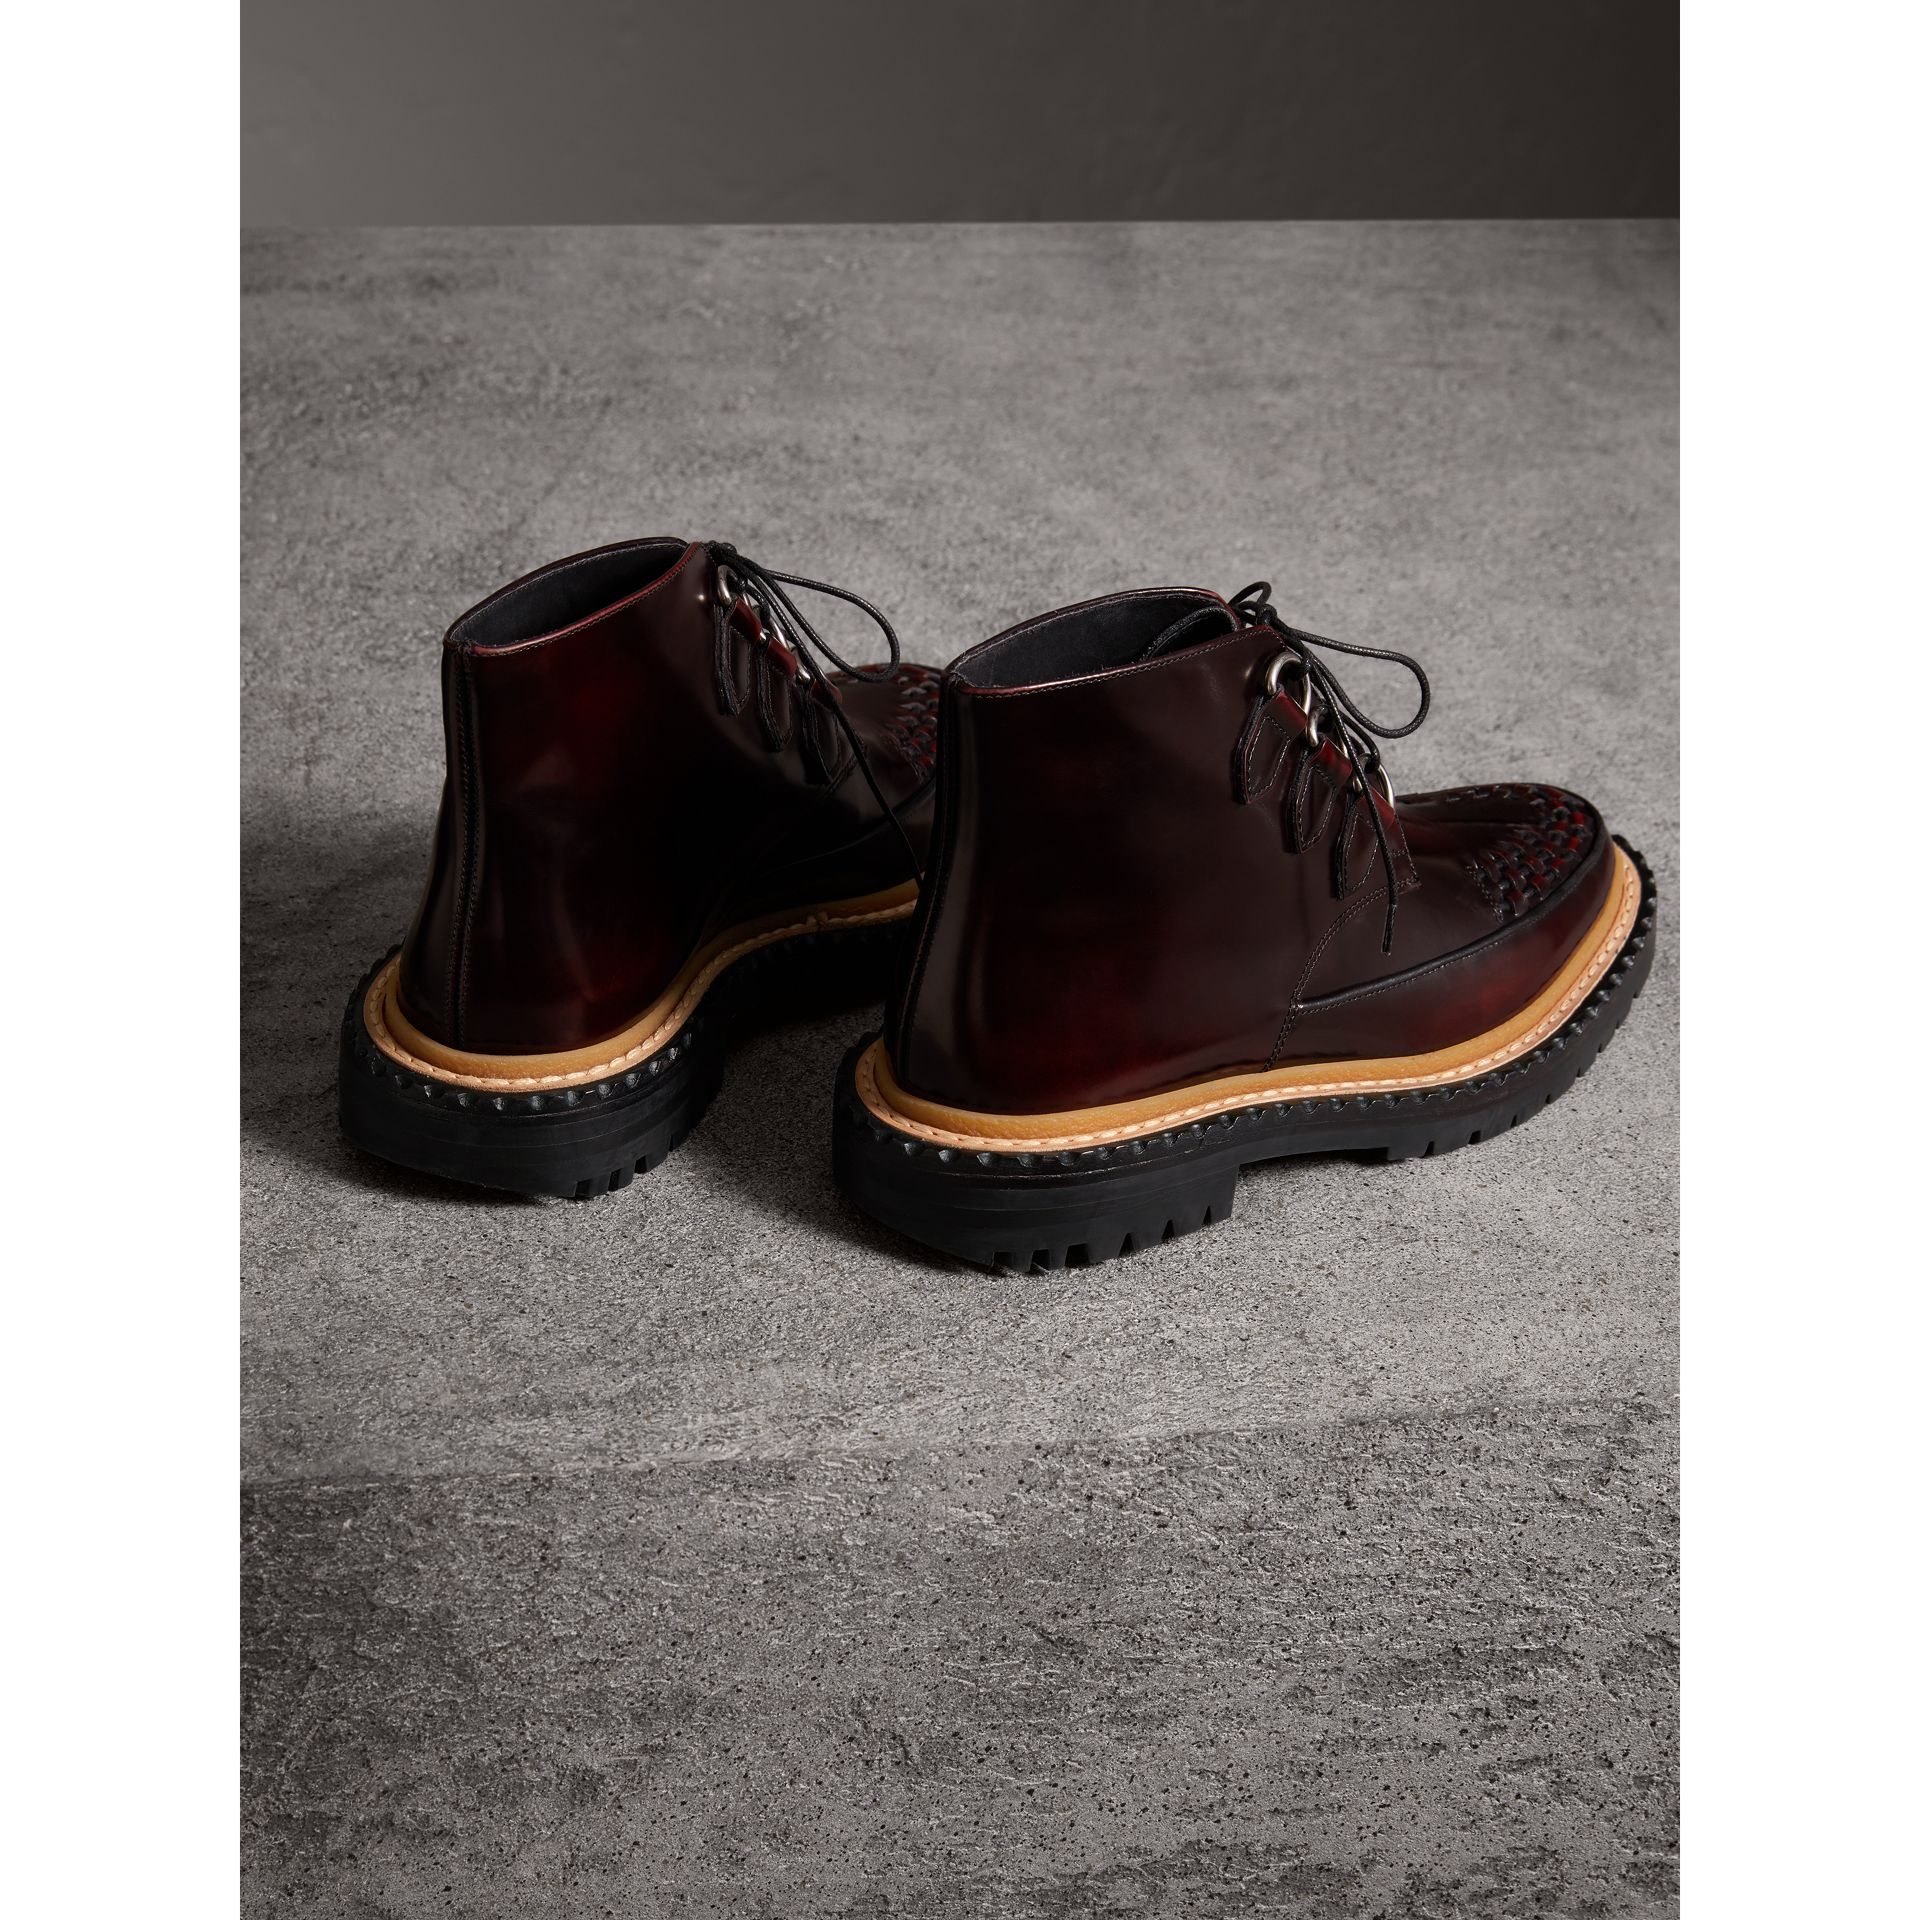 Woven-toe Polished Leather Ankle Boots in Bordeaux - Women | Burberry Australia - gallery image 2